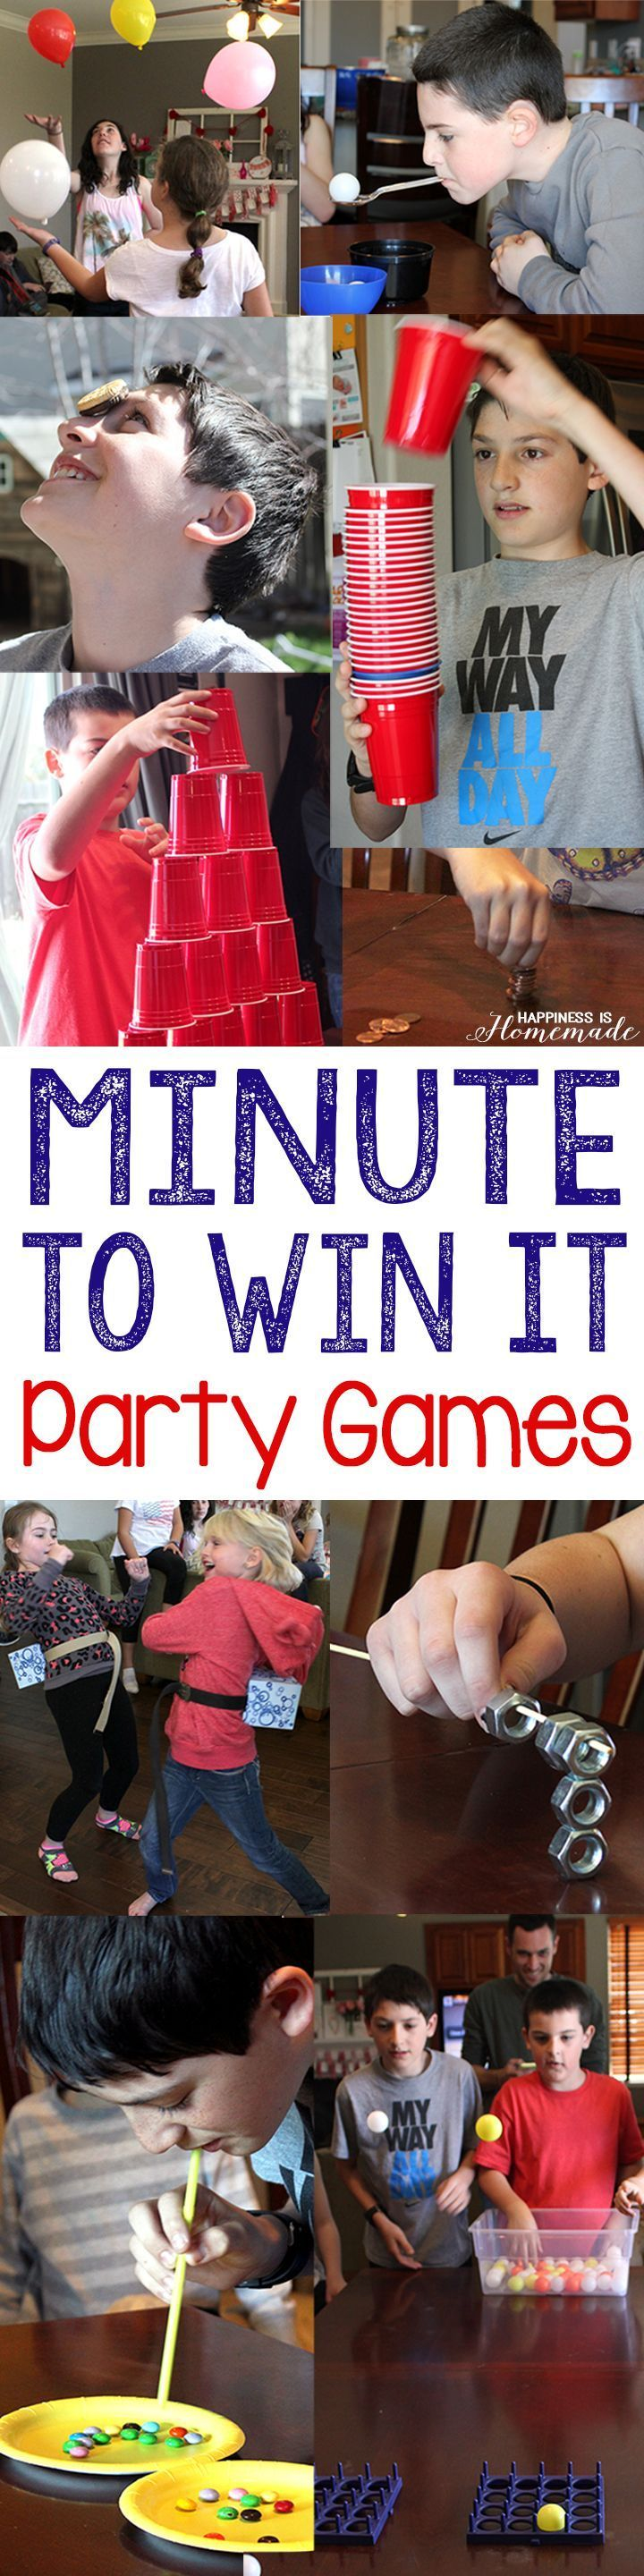 birthday party activities for 12 year olds ; 8857af328076c178cedda397cc436565